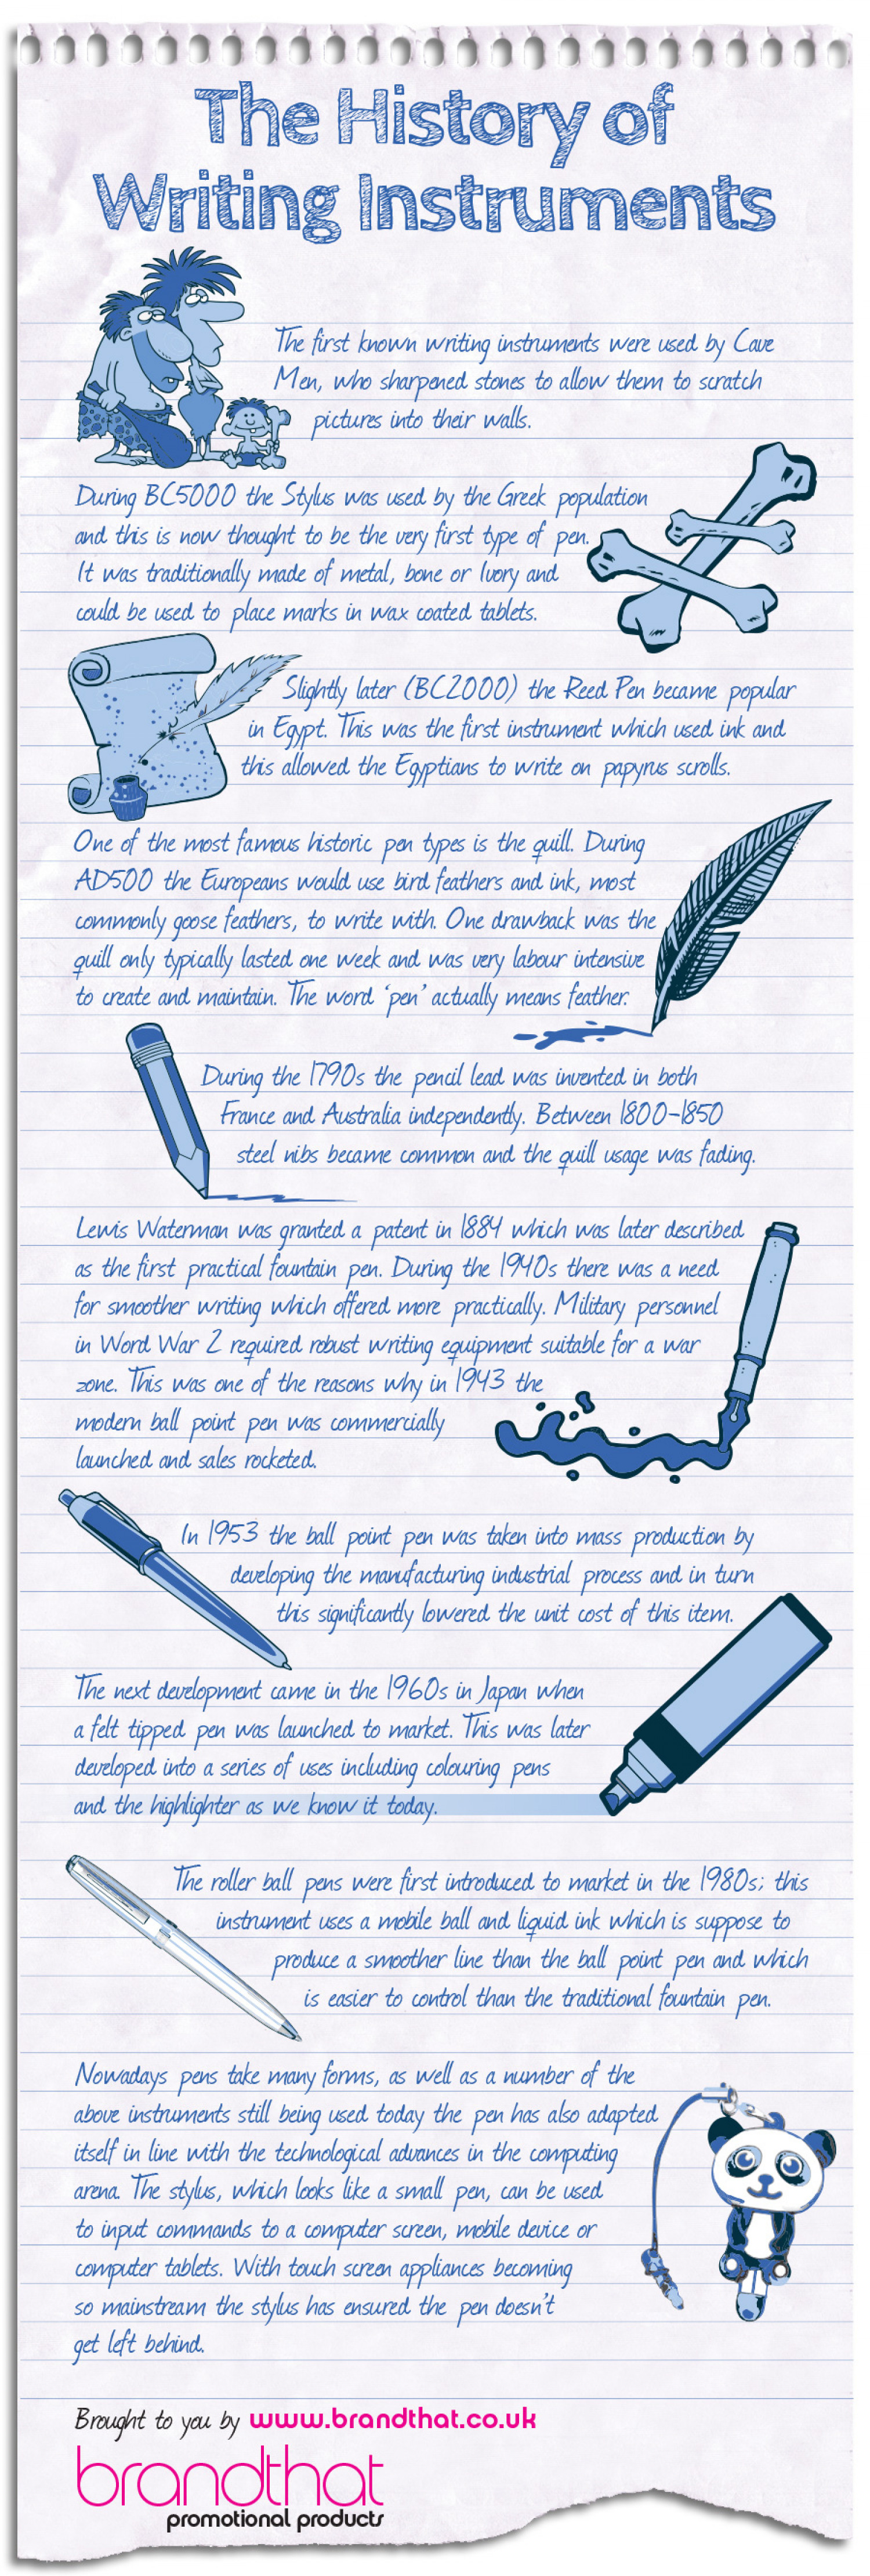 The History of Writing Instruments Infographic